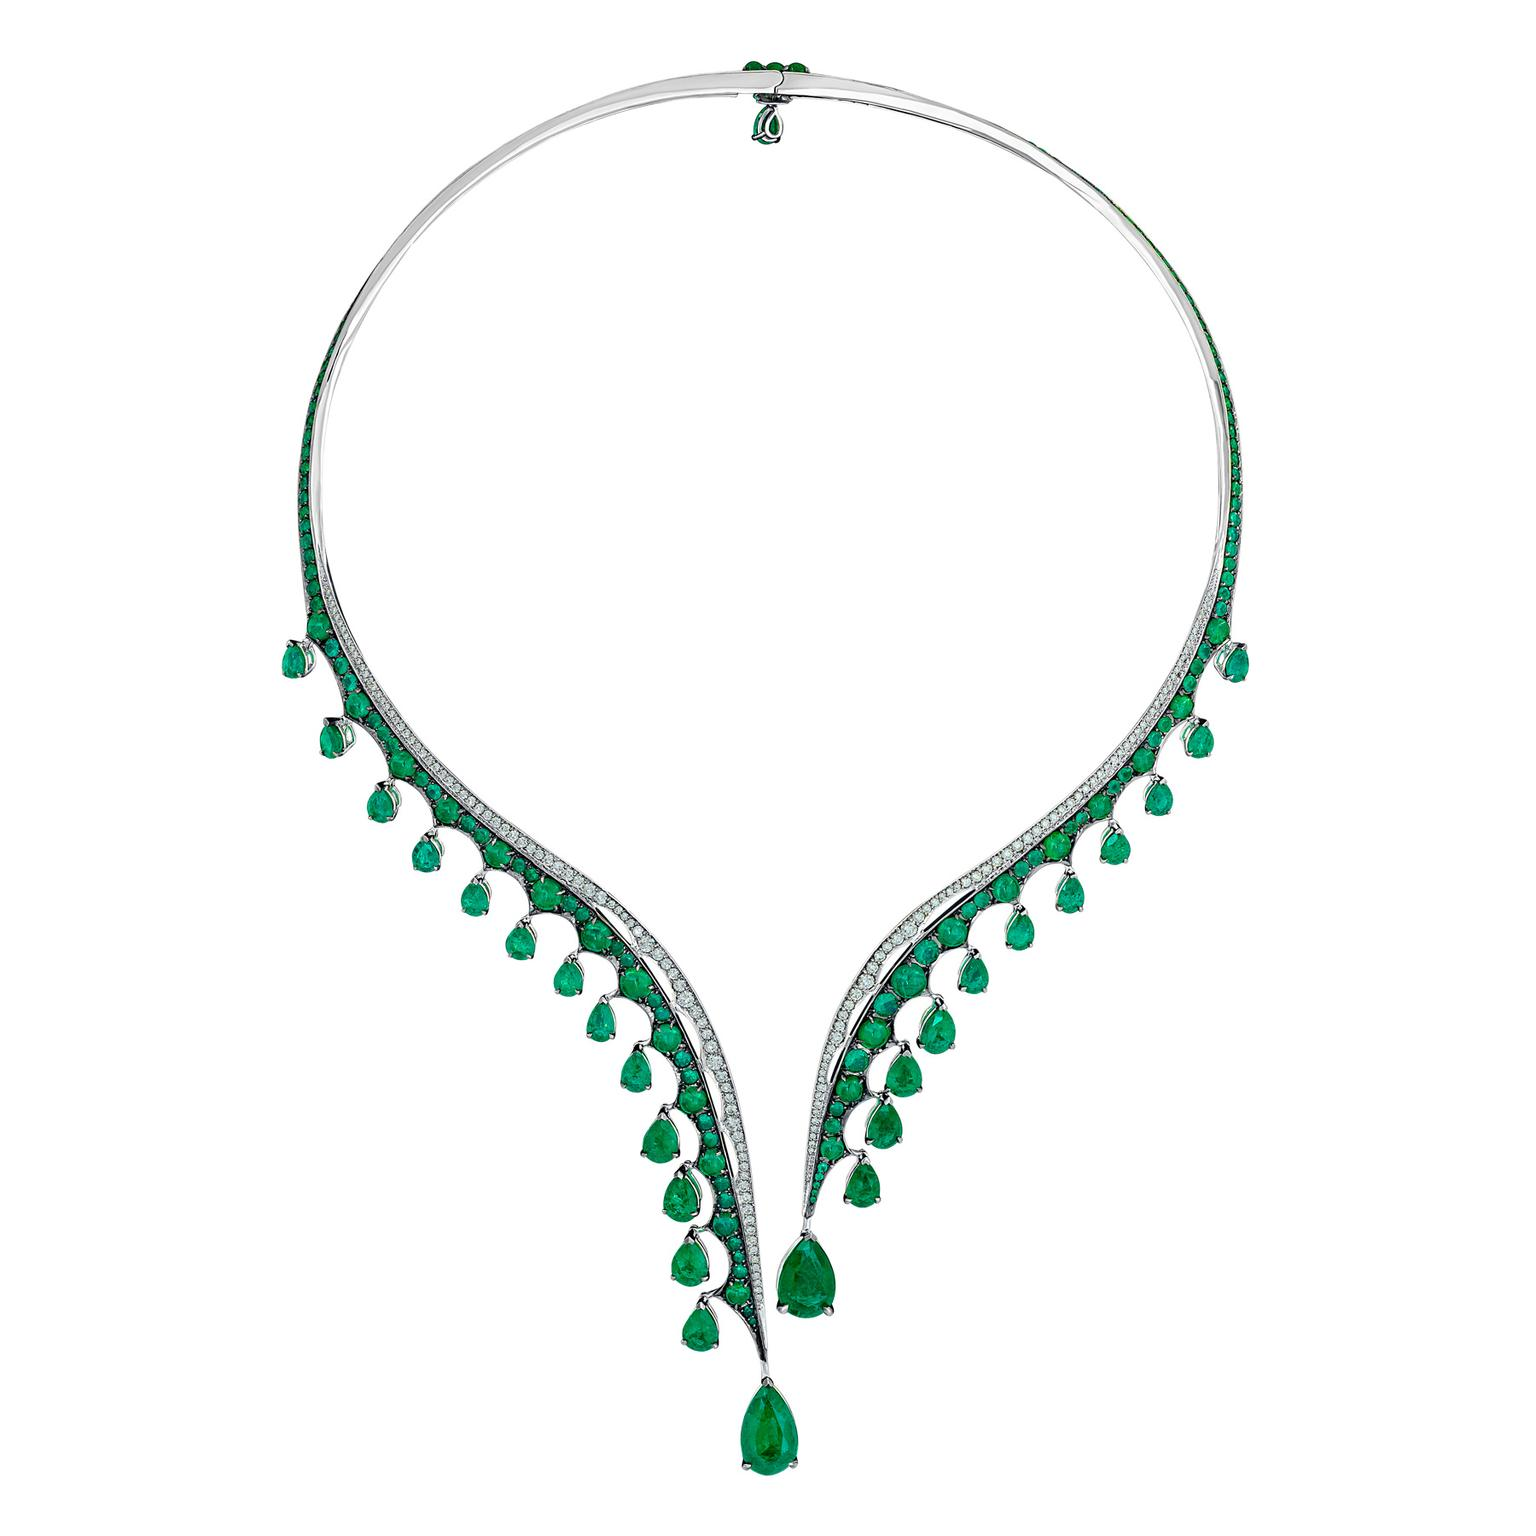 Vanleles Legends of Africa Gemfields emerald choker